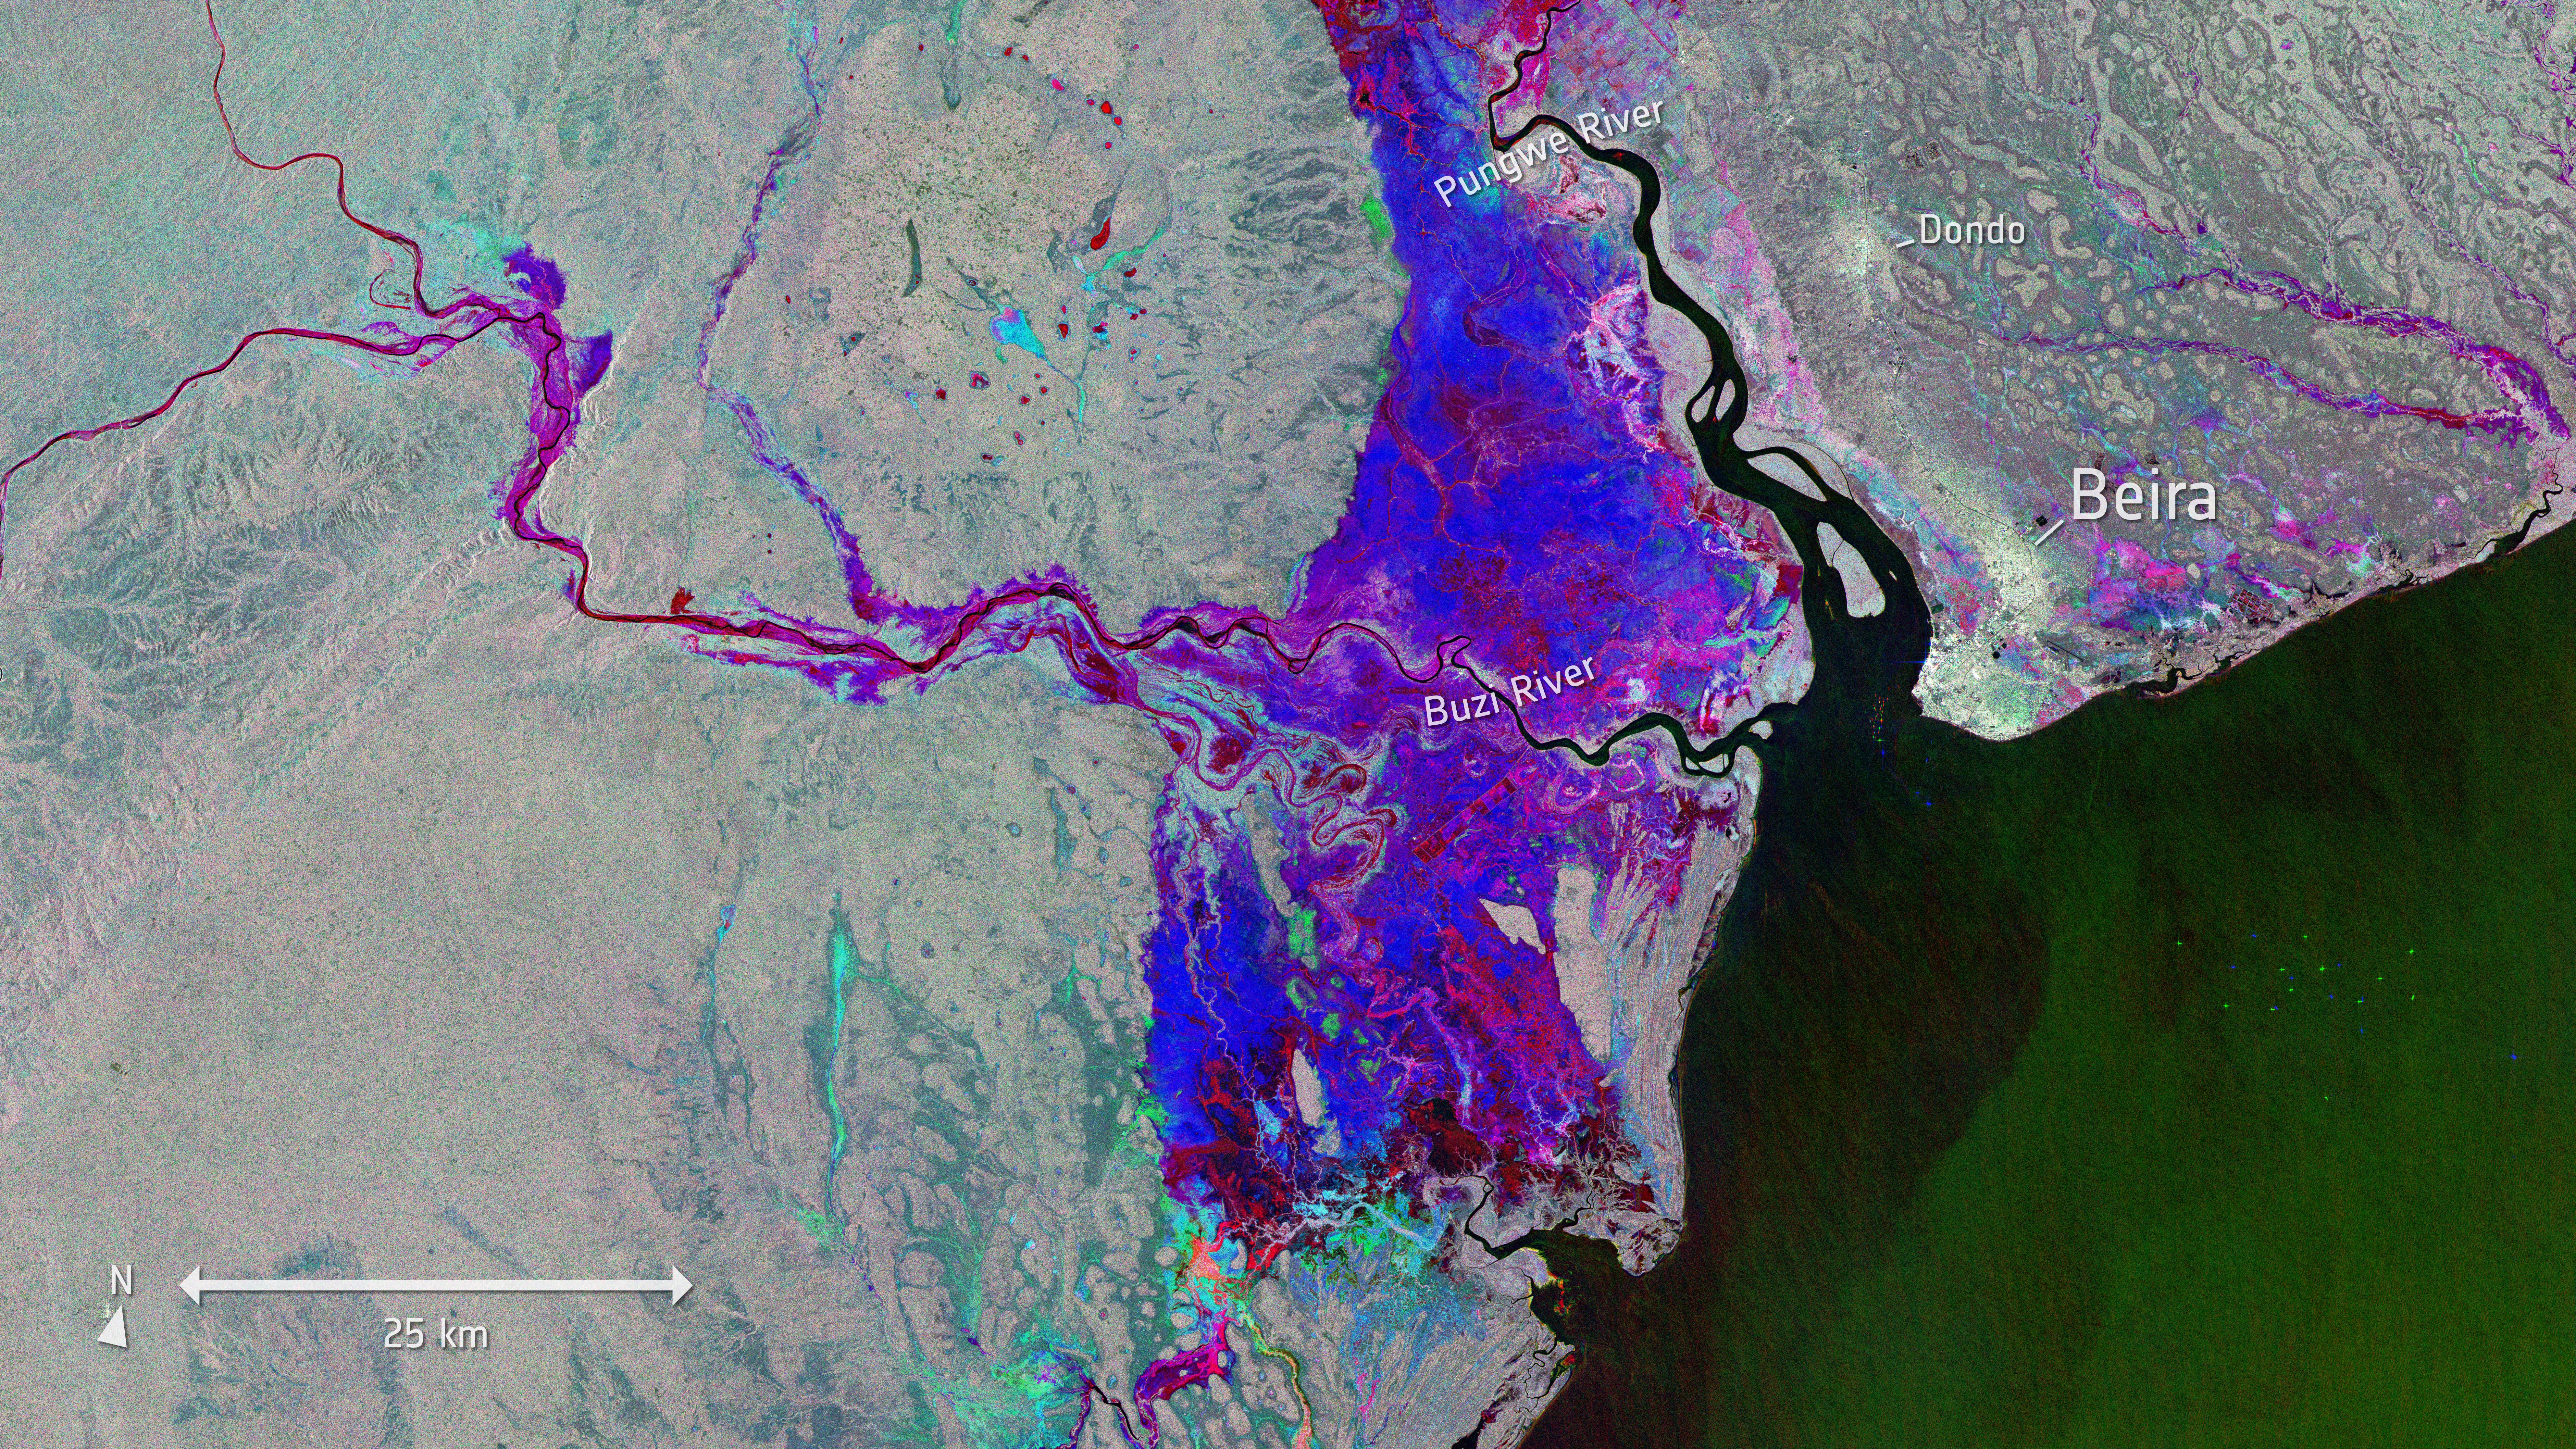 Areas where the flood waters are beginning to recede west of the port city of Beira in Mozambique.